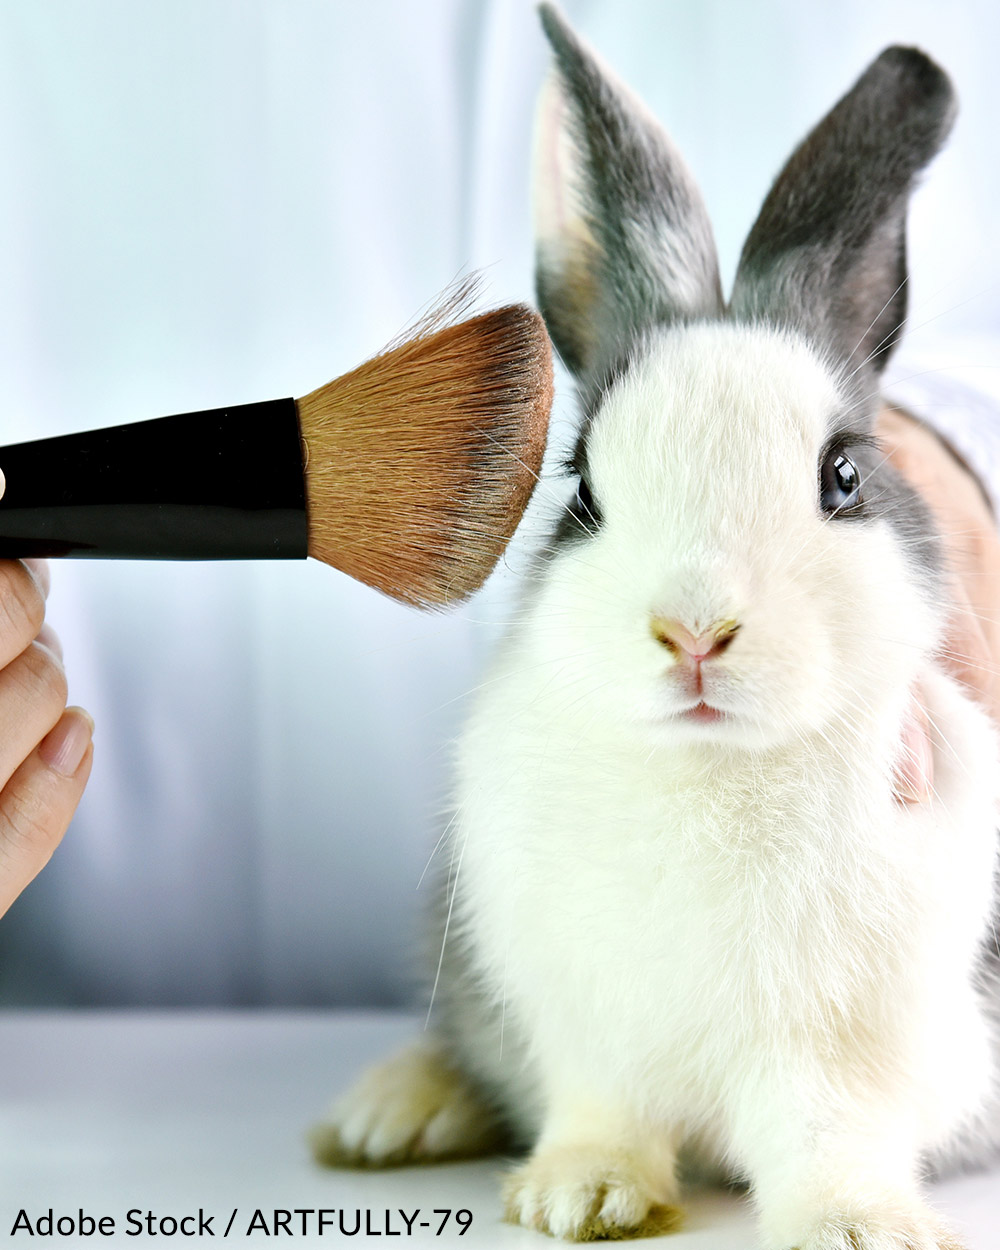 Animal testing is still required in some foreign markets.